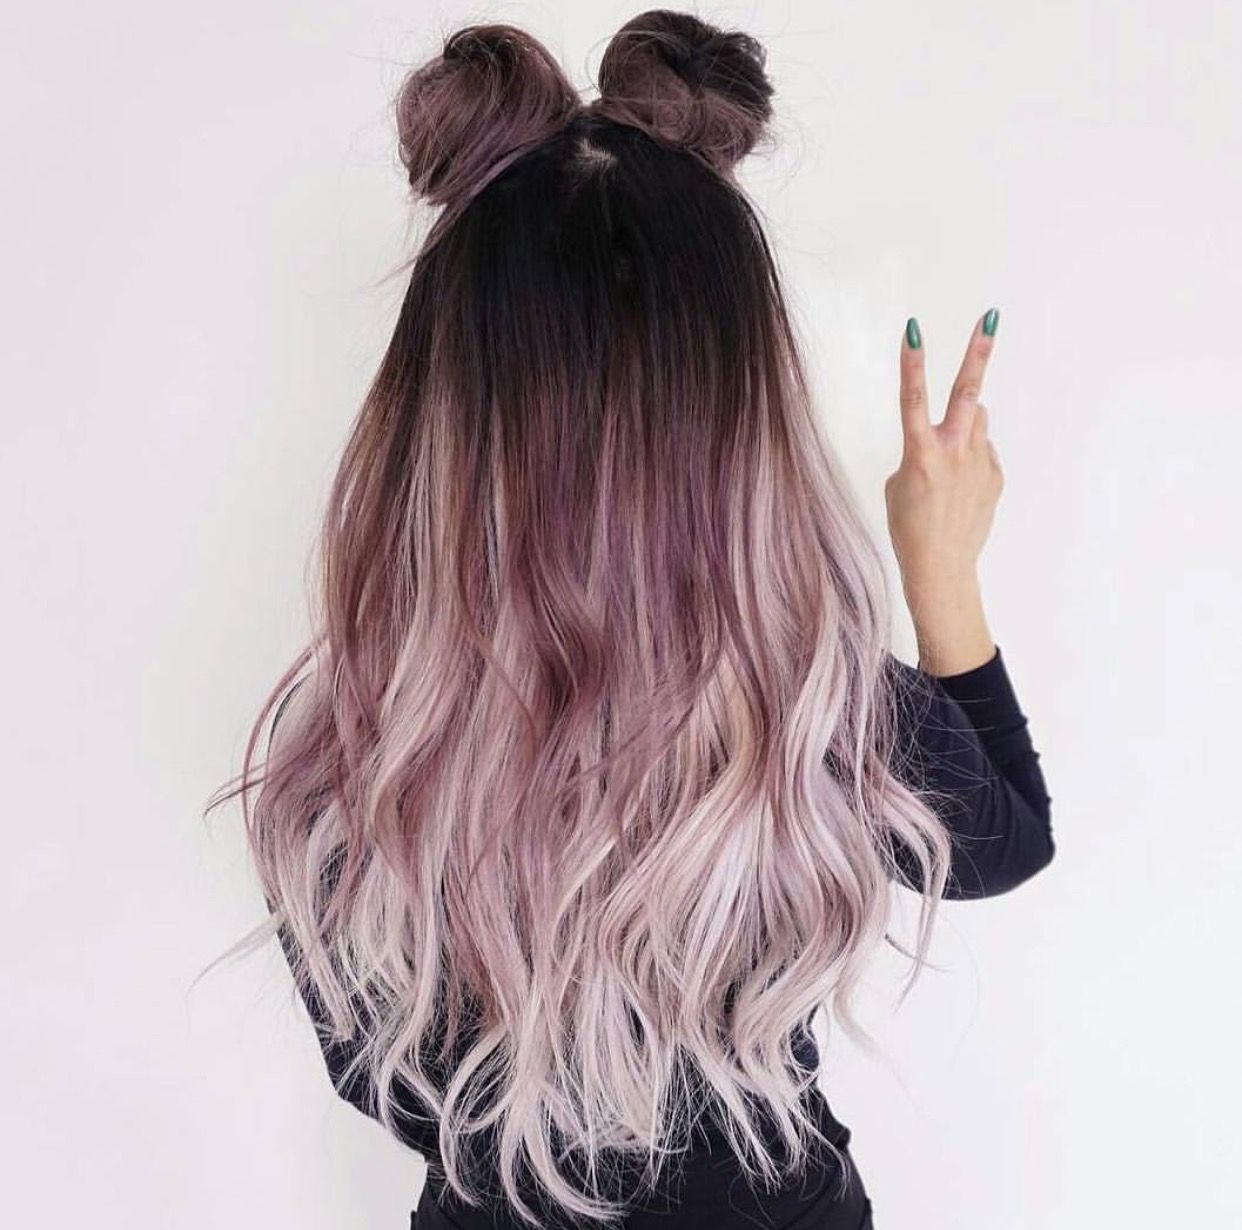 awesome rockin hairstyle and color ombre dark to light